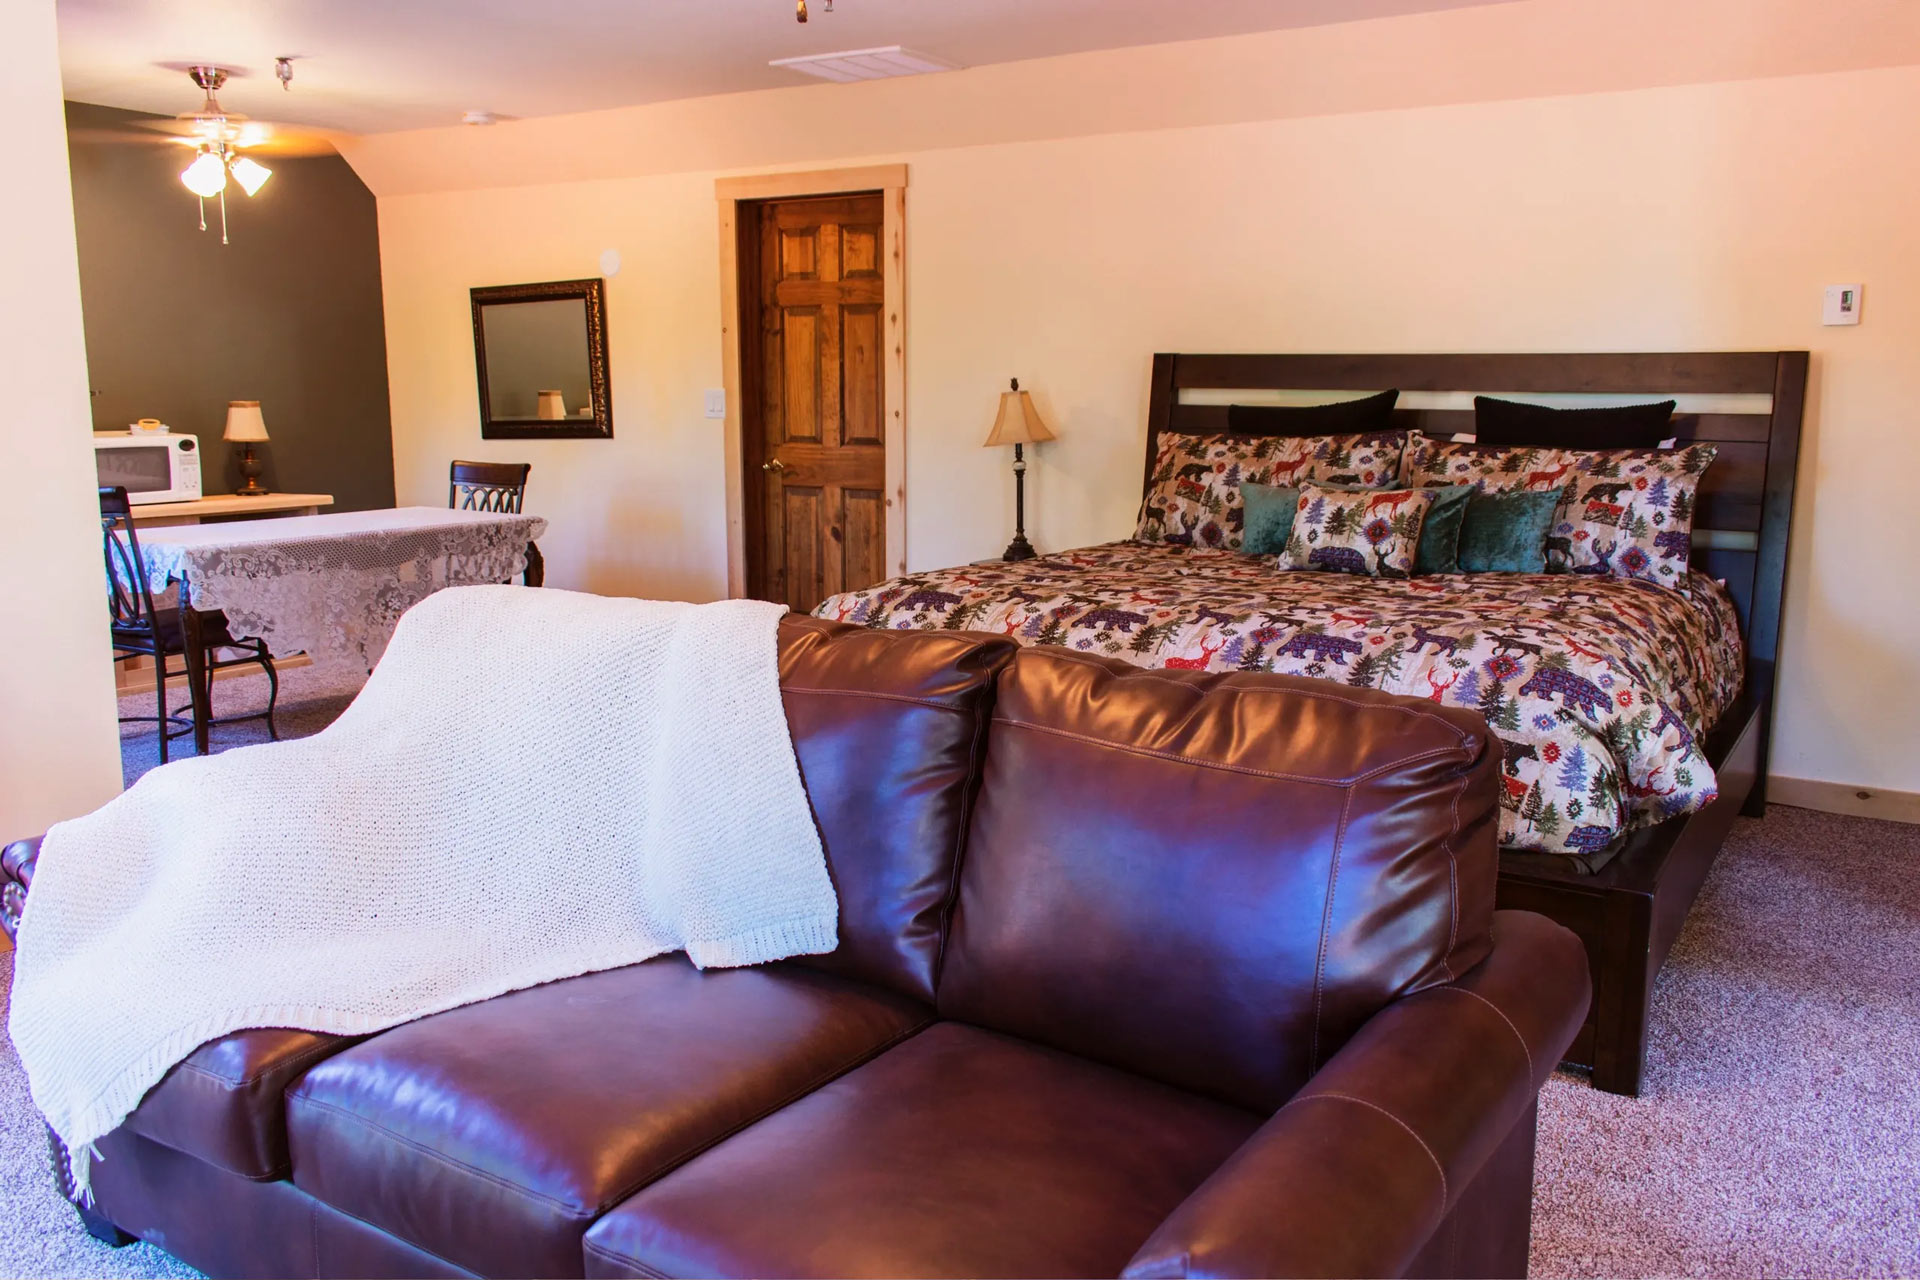 Carriage house bedroom with queen size bed